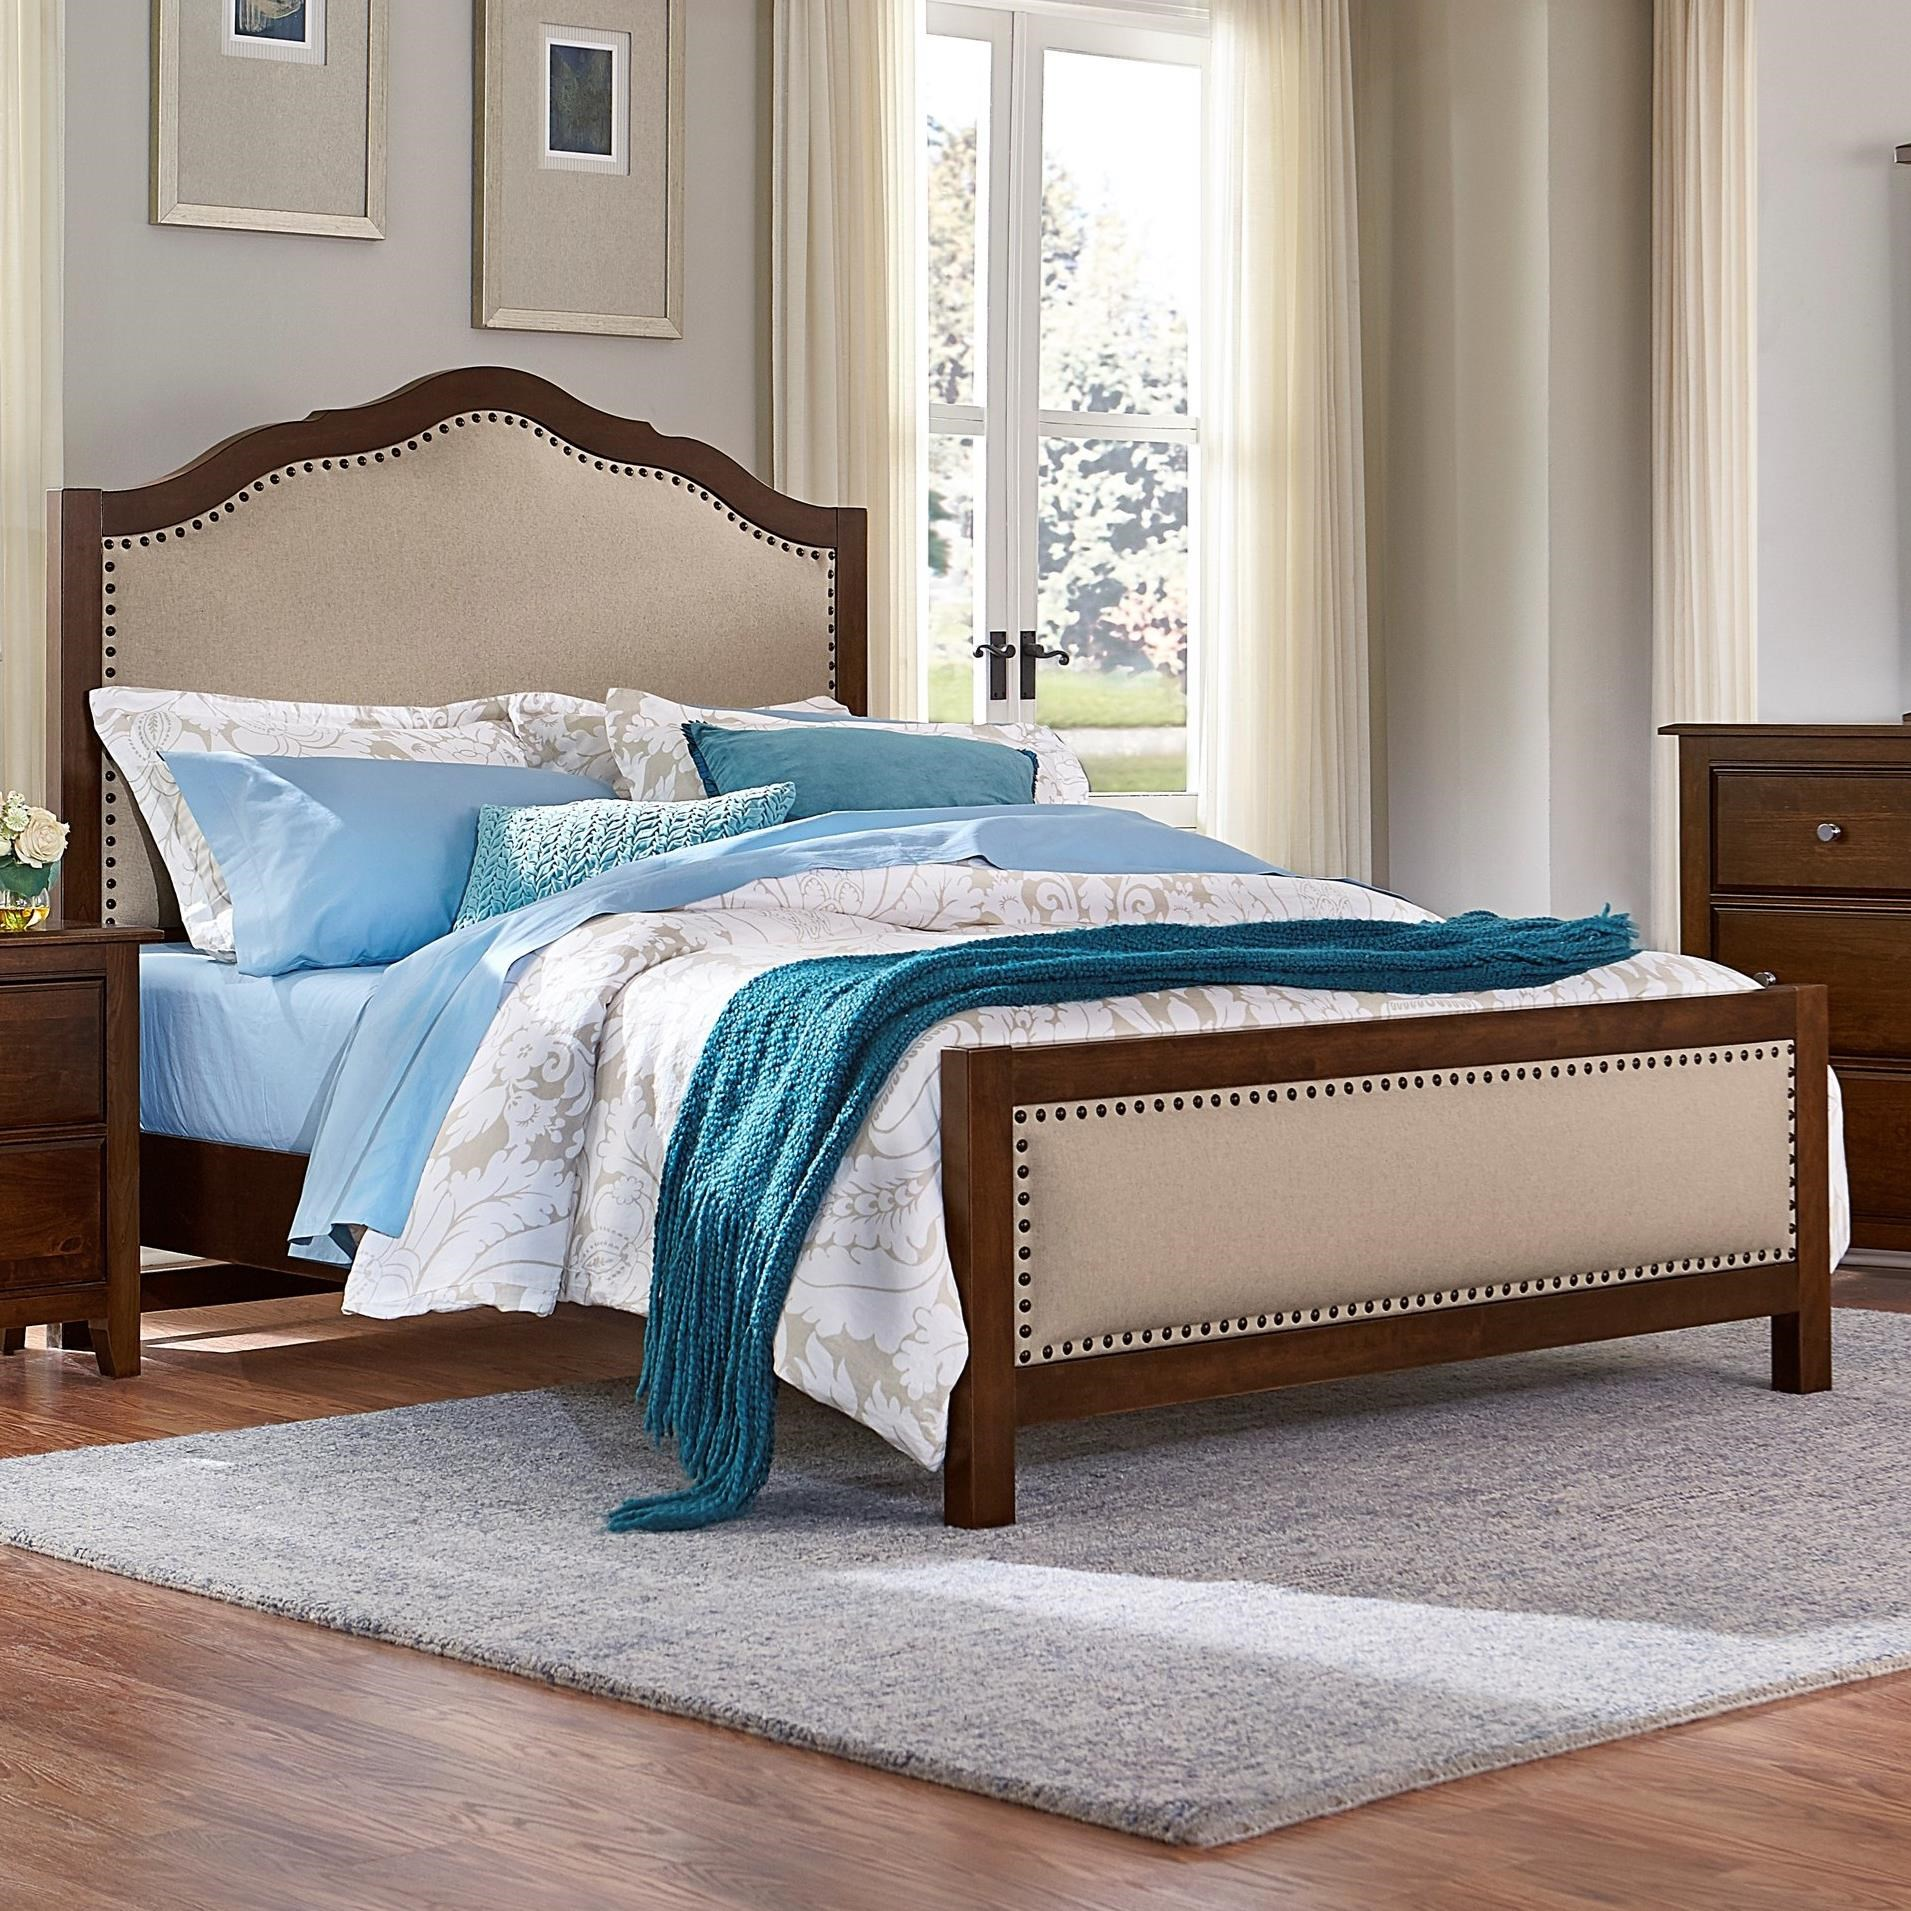 Artisan & Post Artisan Choices Queen Upholstered Bed - Item Number: 104-551+155+922